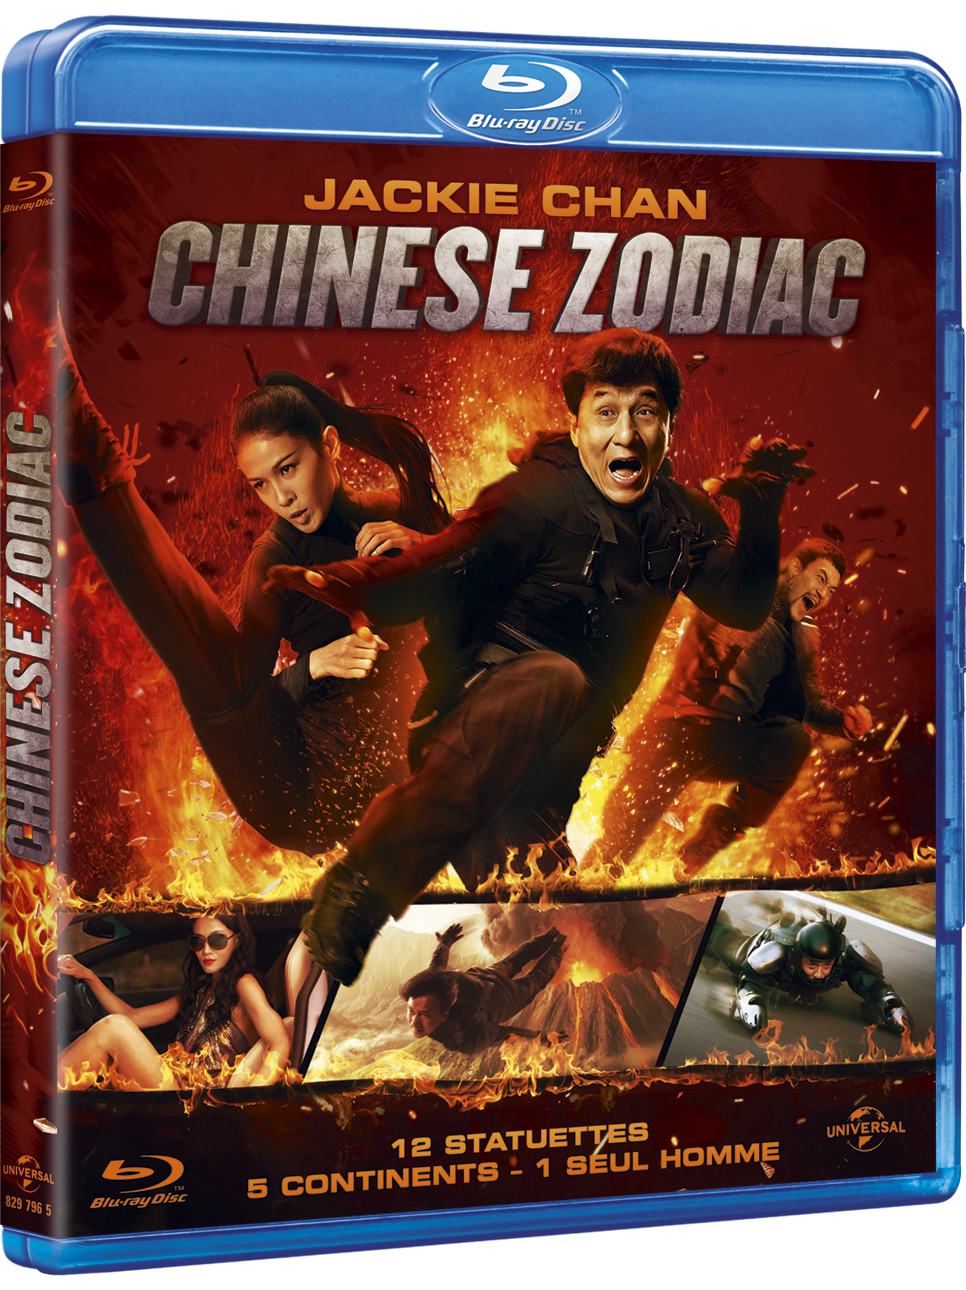 le dvd et le blu ray de chinese zodiac est dans les bacs interview de jackie chan jackie. Black Bedroom Furniture Sets. Home Design Ideas